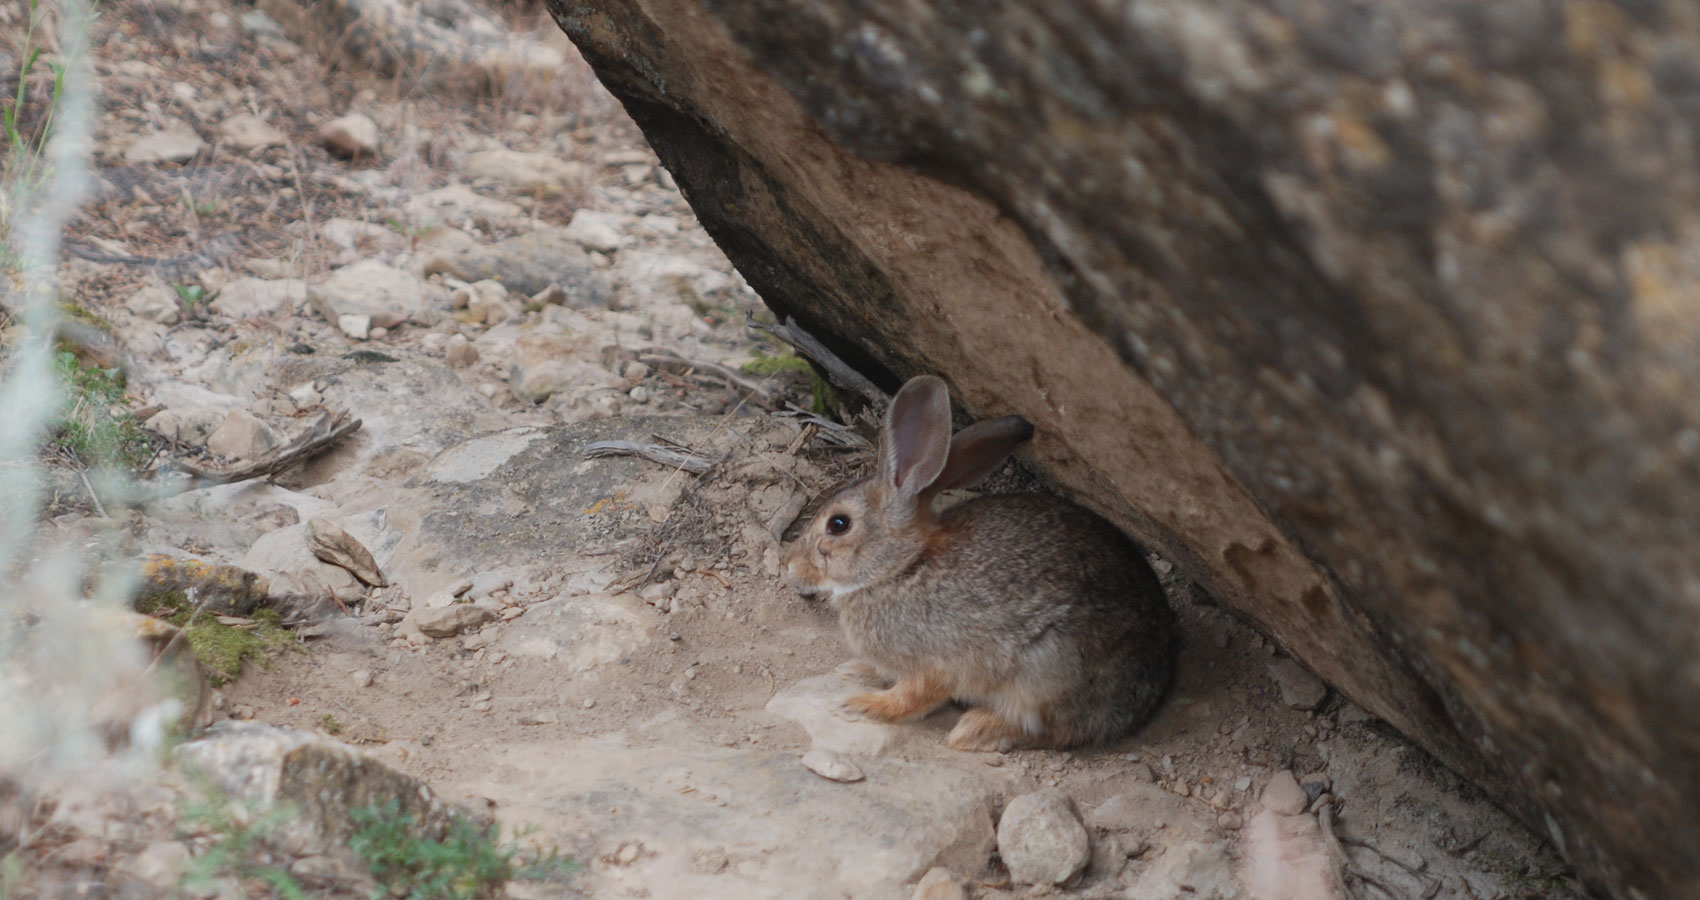 Cottontail, a haiku written by John R. Cobb at Spillwords.com